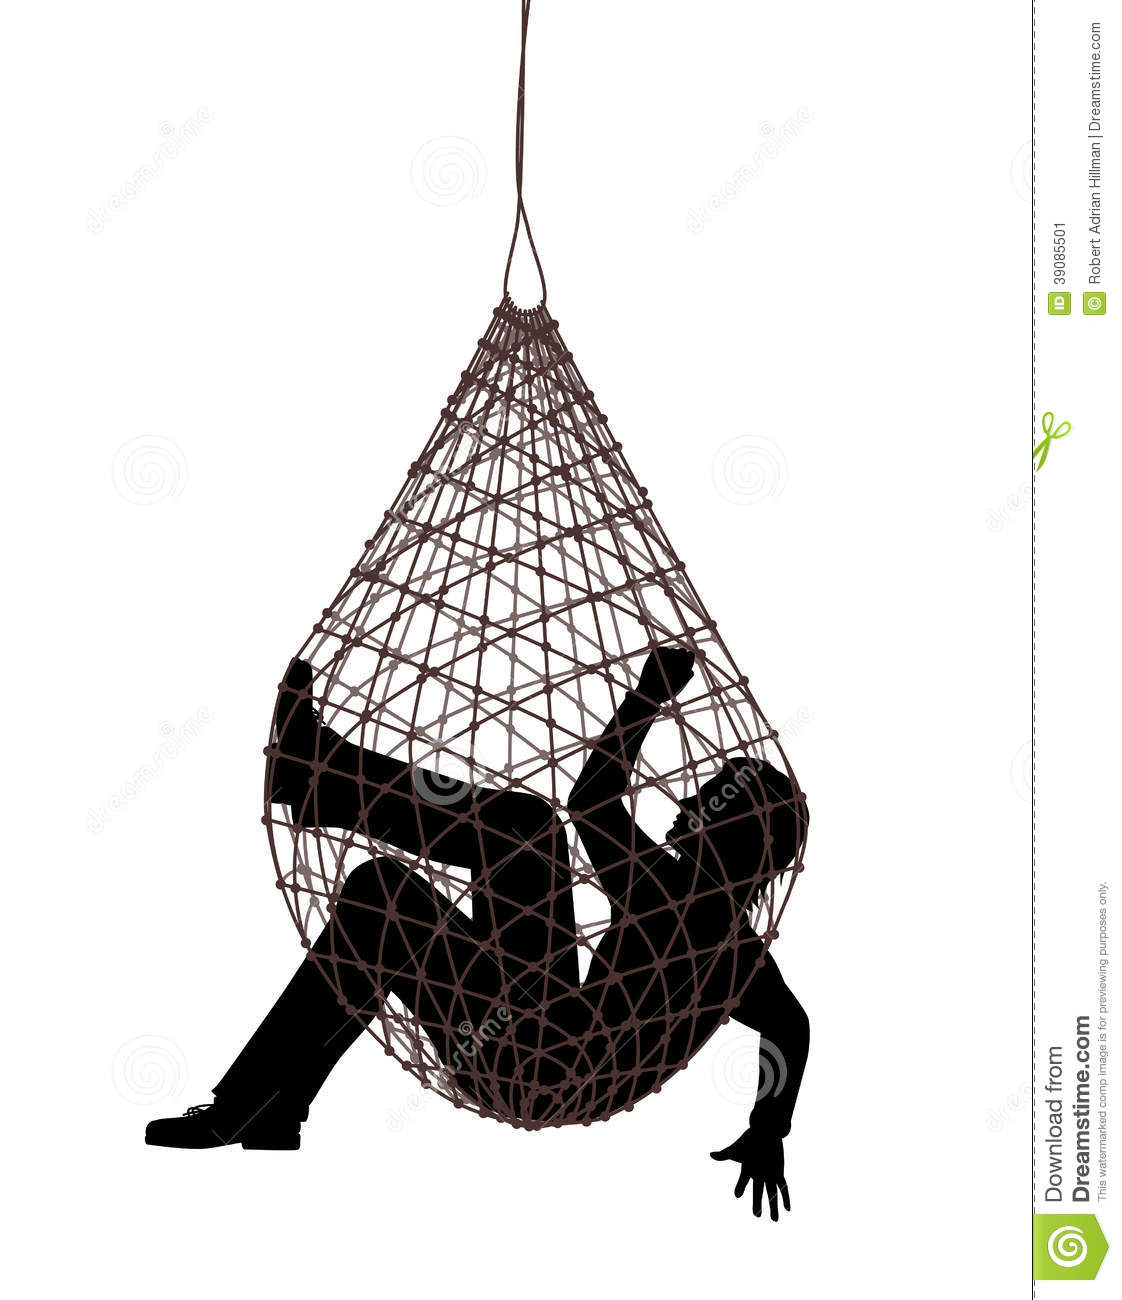 People Caught in Net Trap